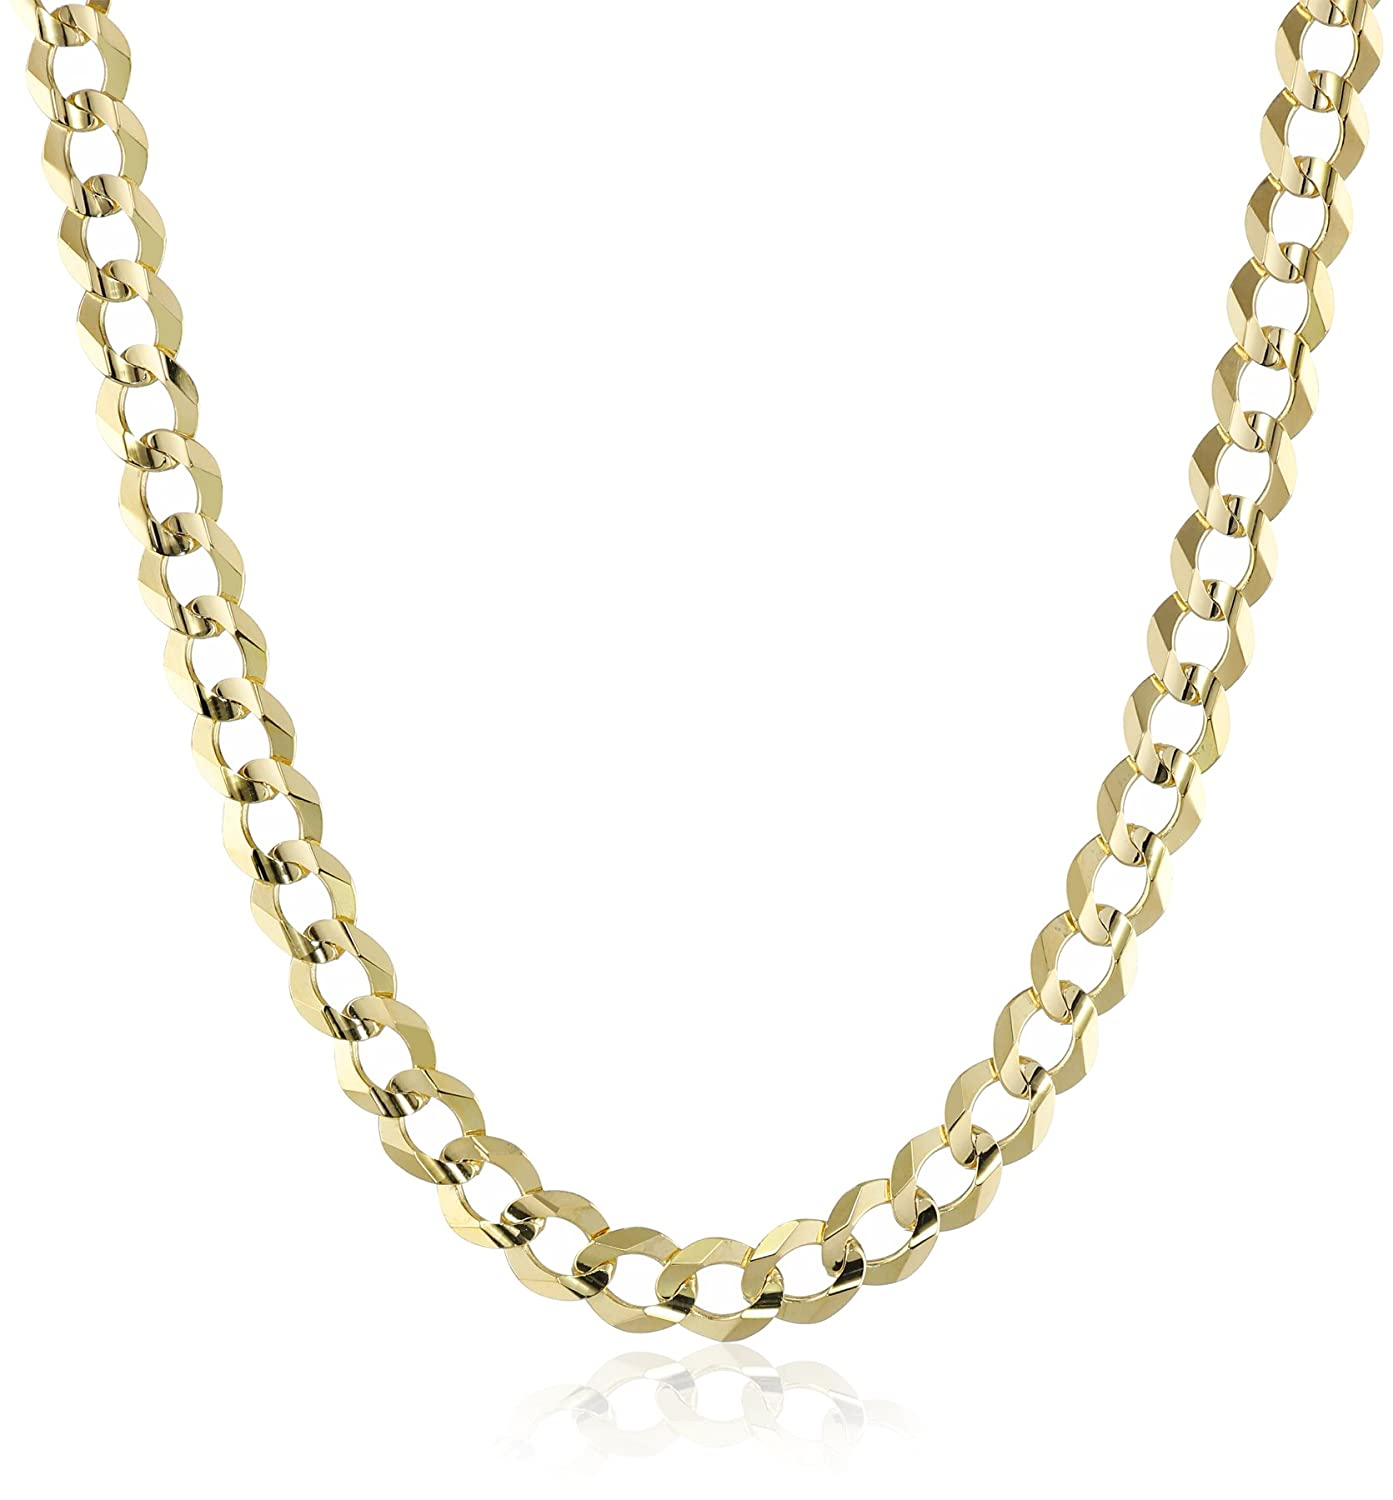 chain uk img product chains gold yellow